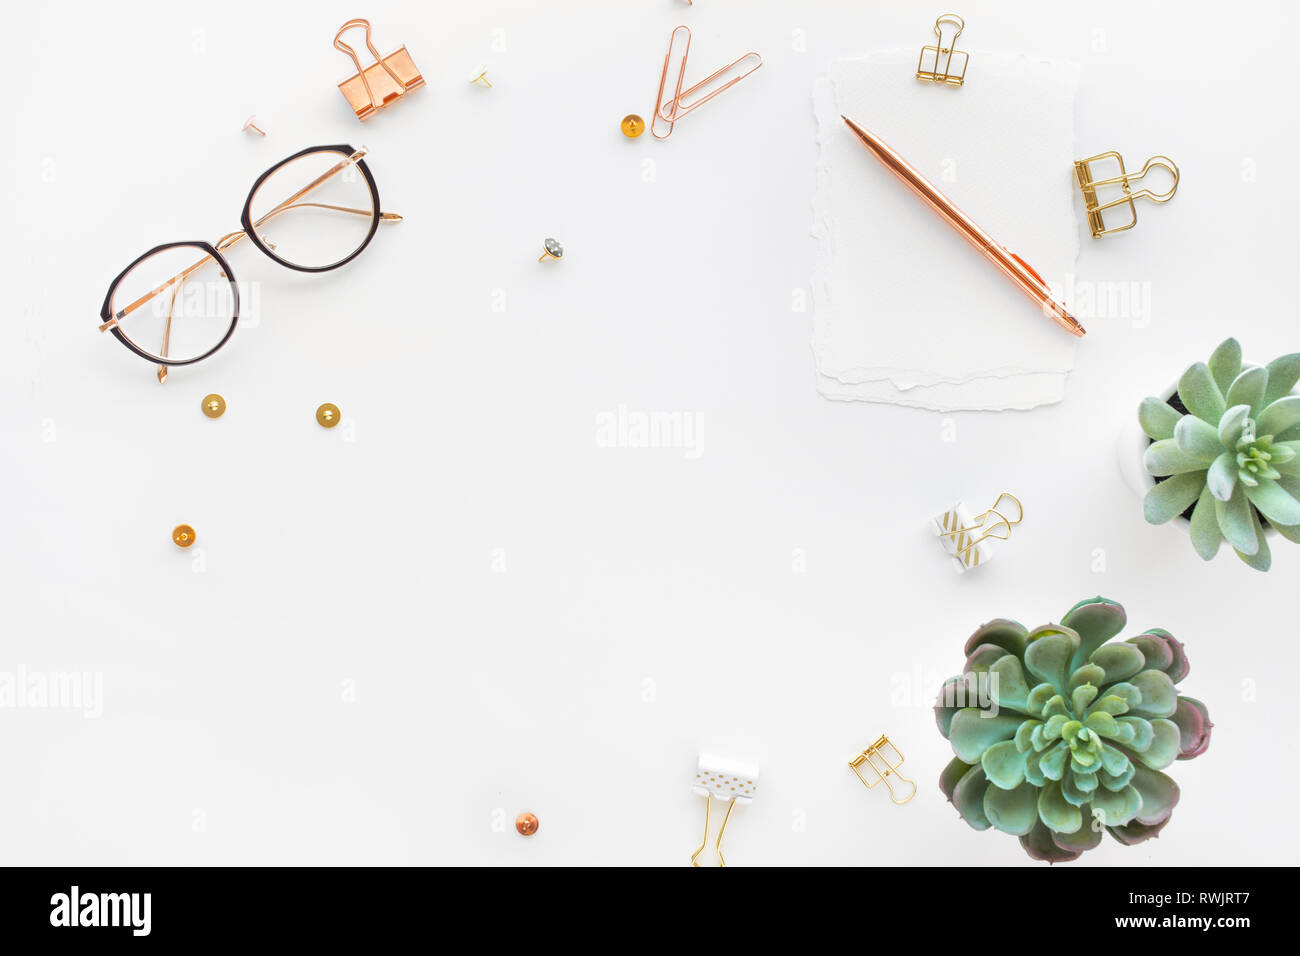 Elegant work table with business accessories on withe background.luxury feminism style.flat lay - Stock Image